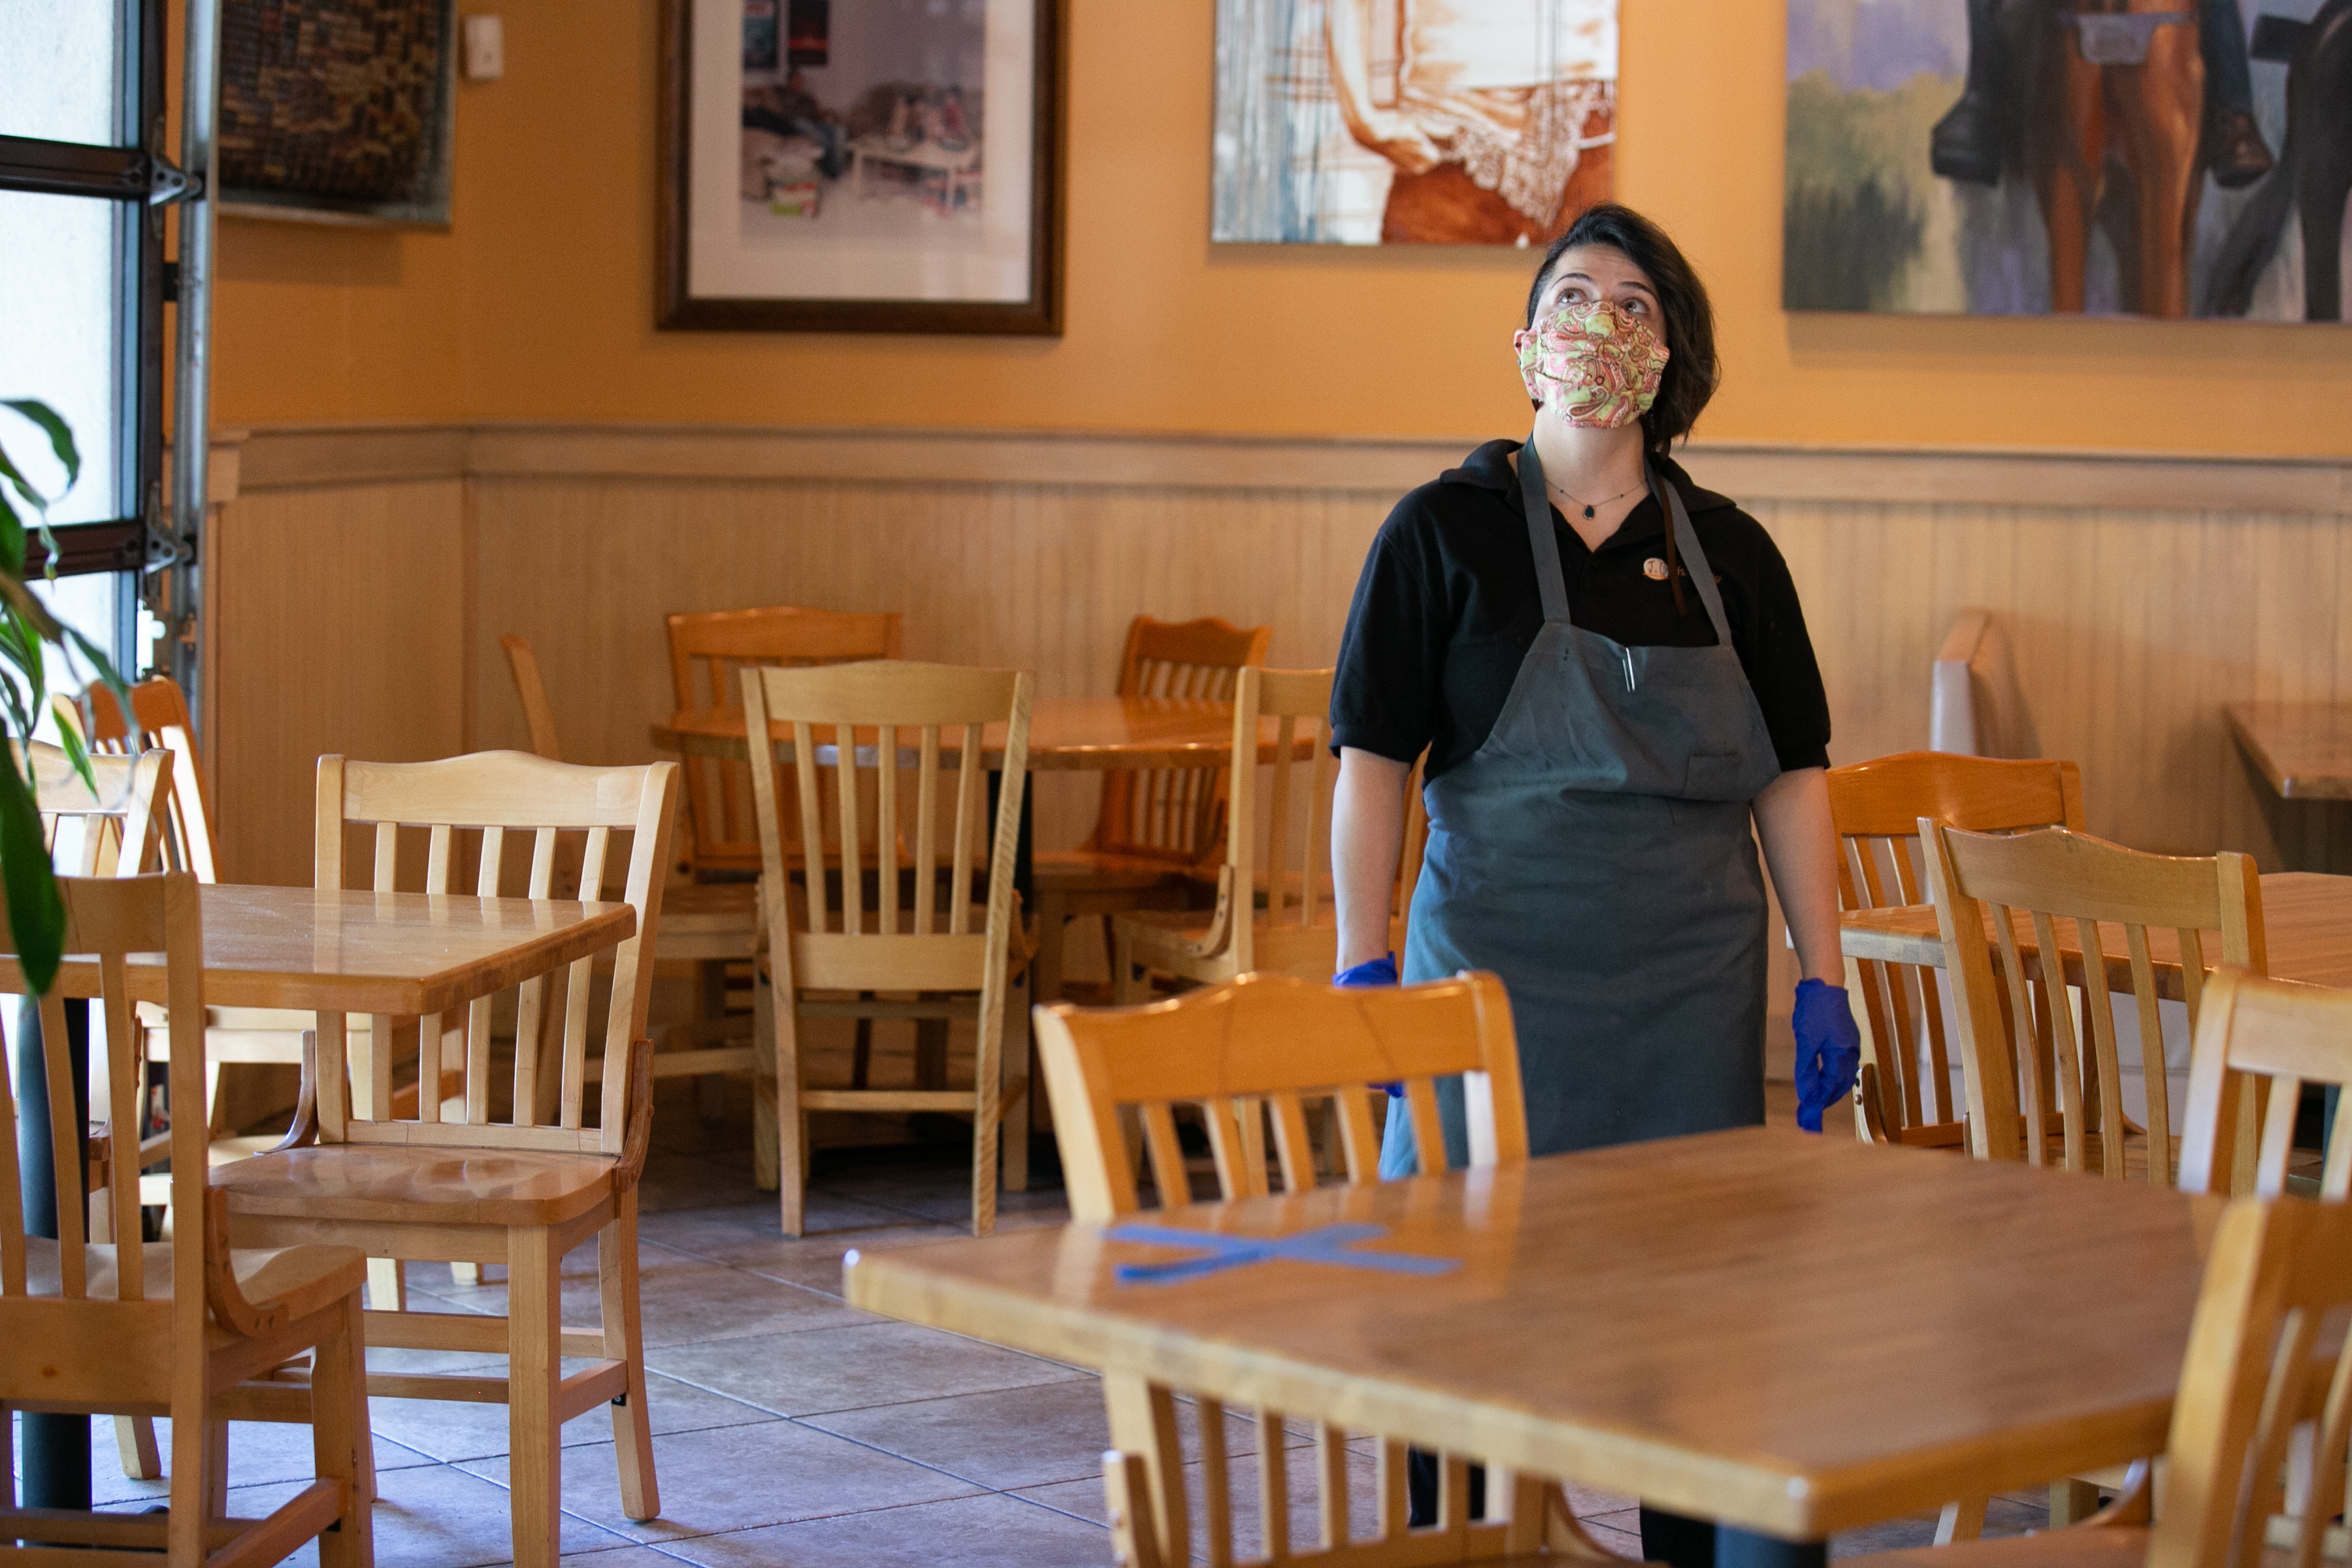 Restaurant worker wearing mask in empty dining room, looks up toward ceiling.